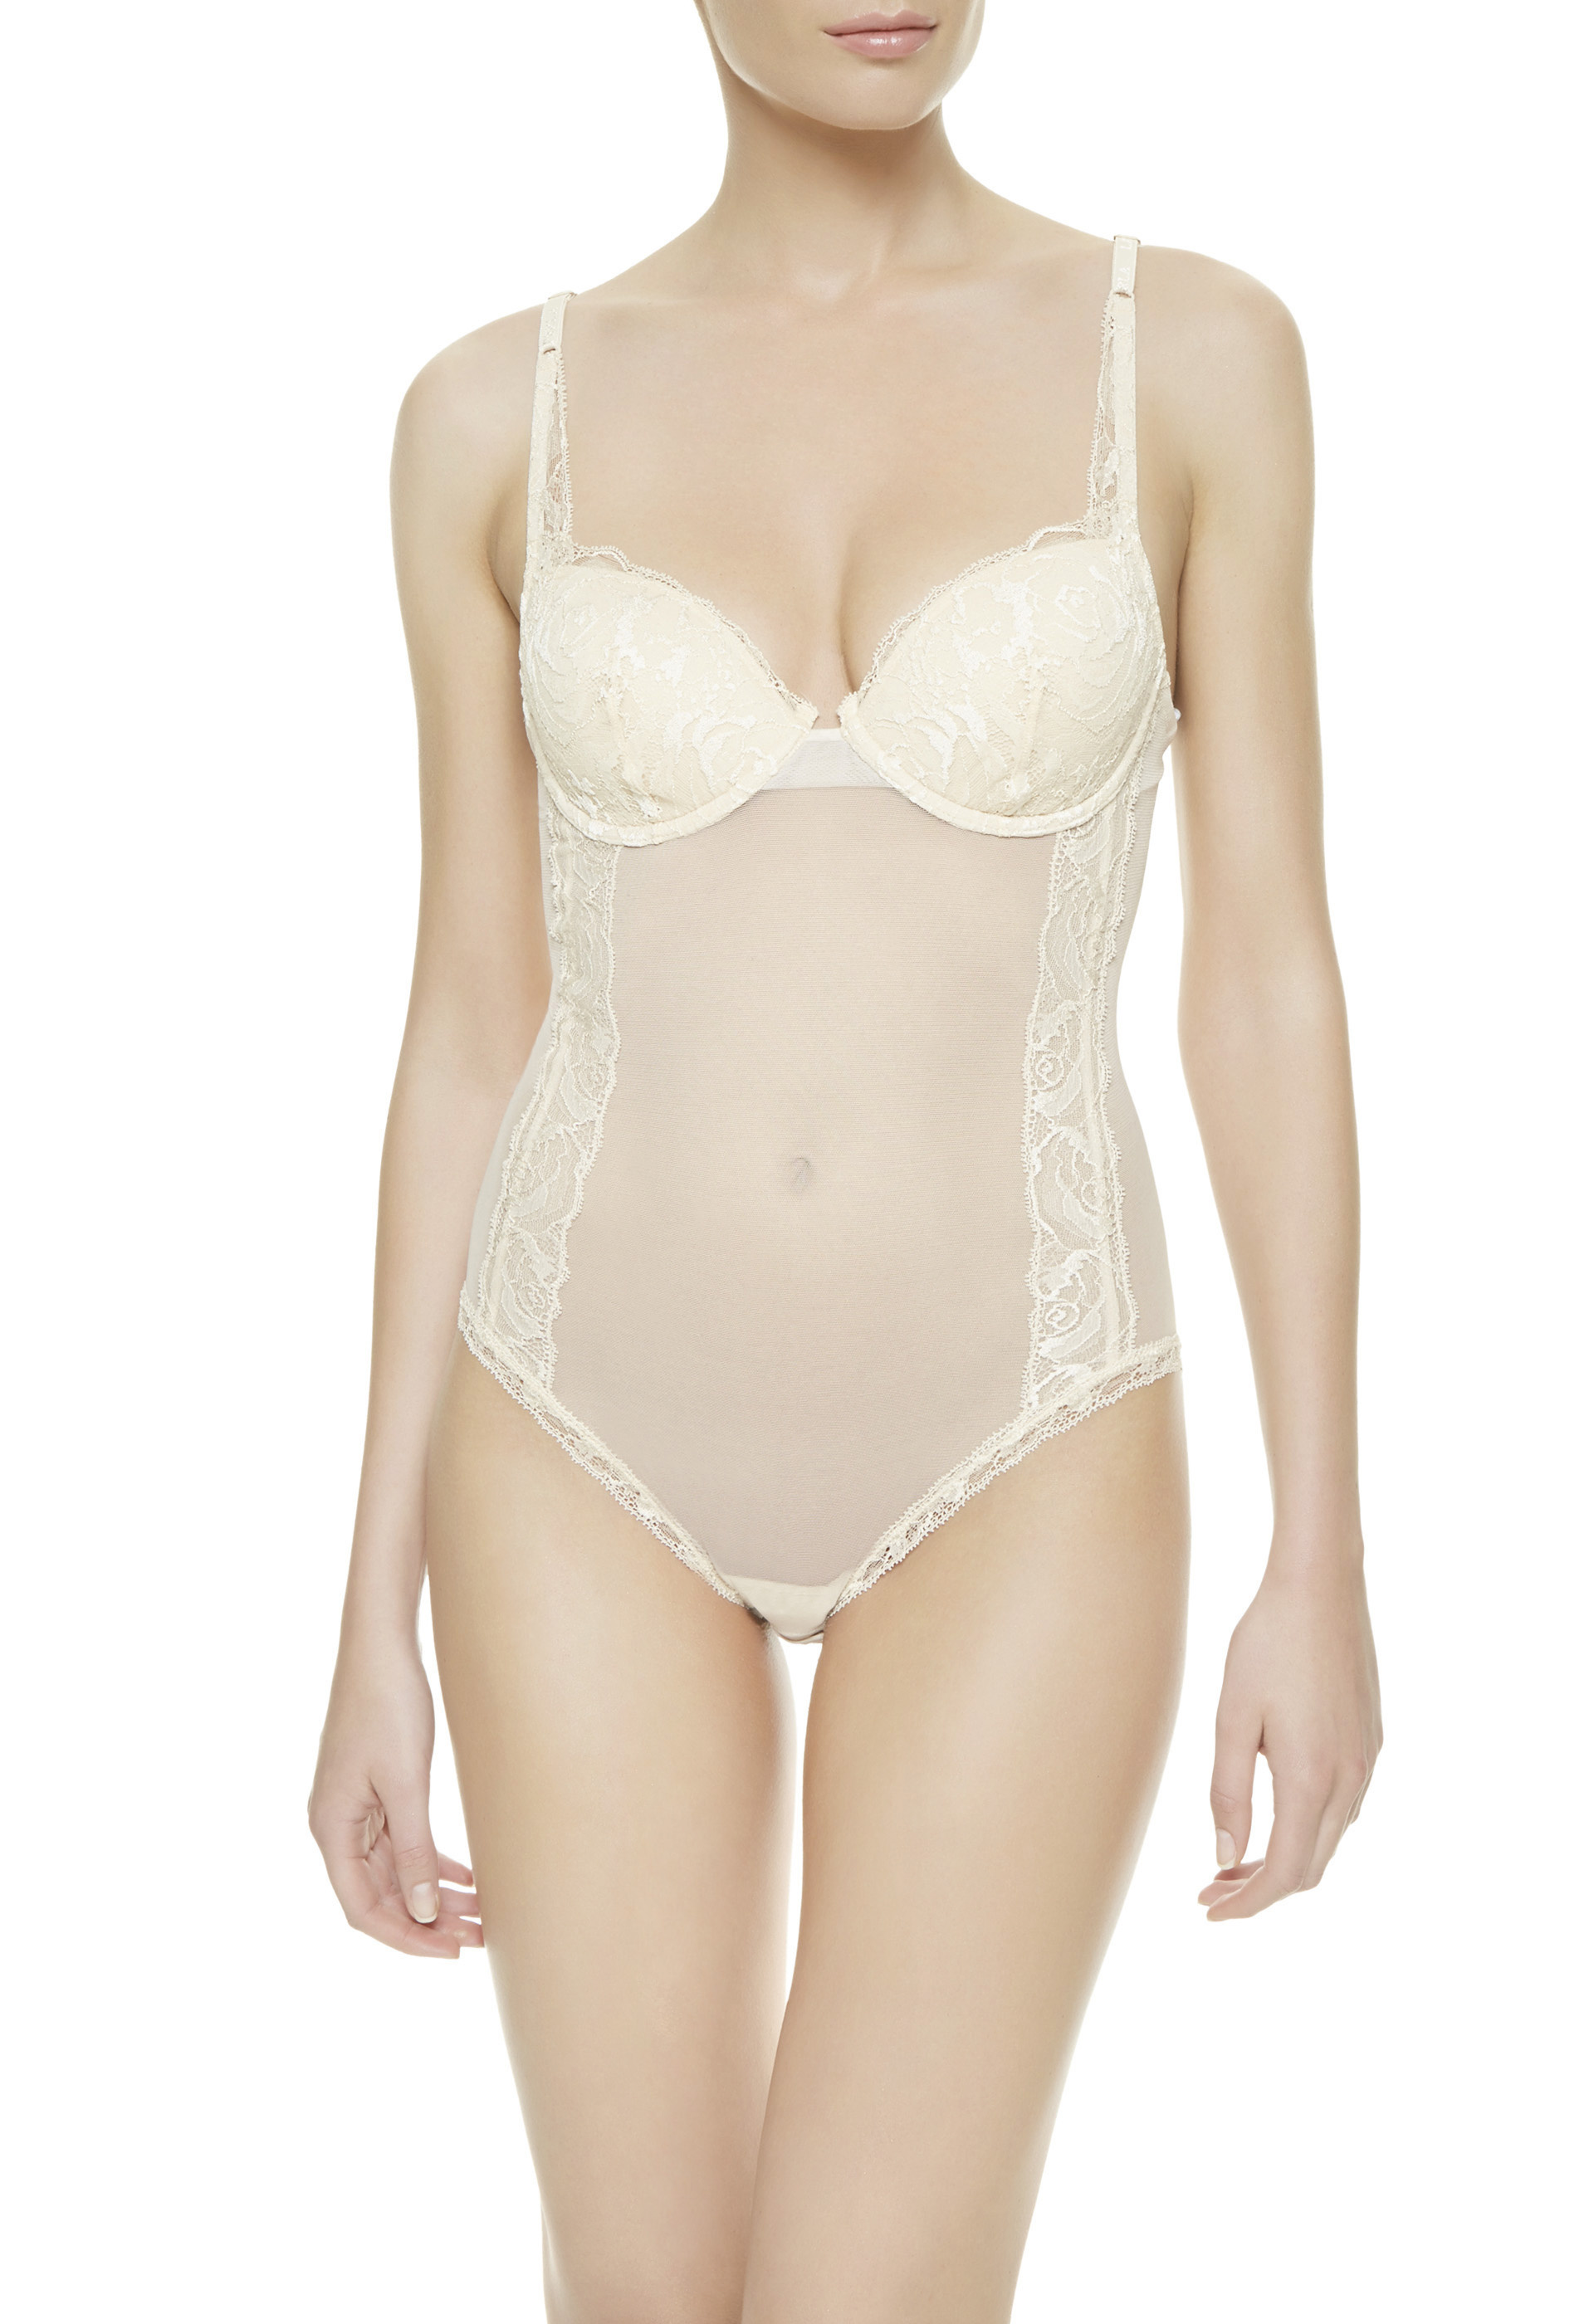 laperla bodysuits 14-01